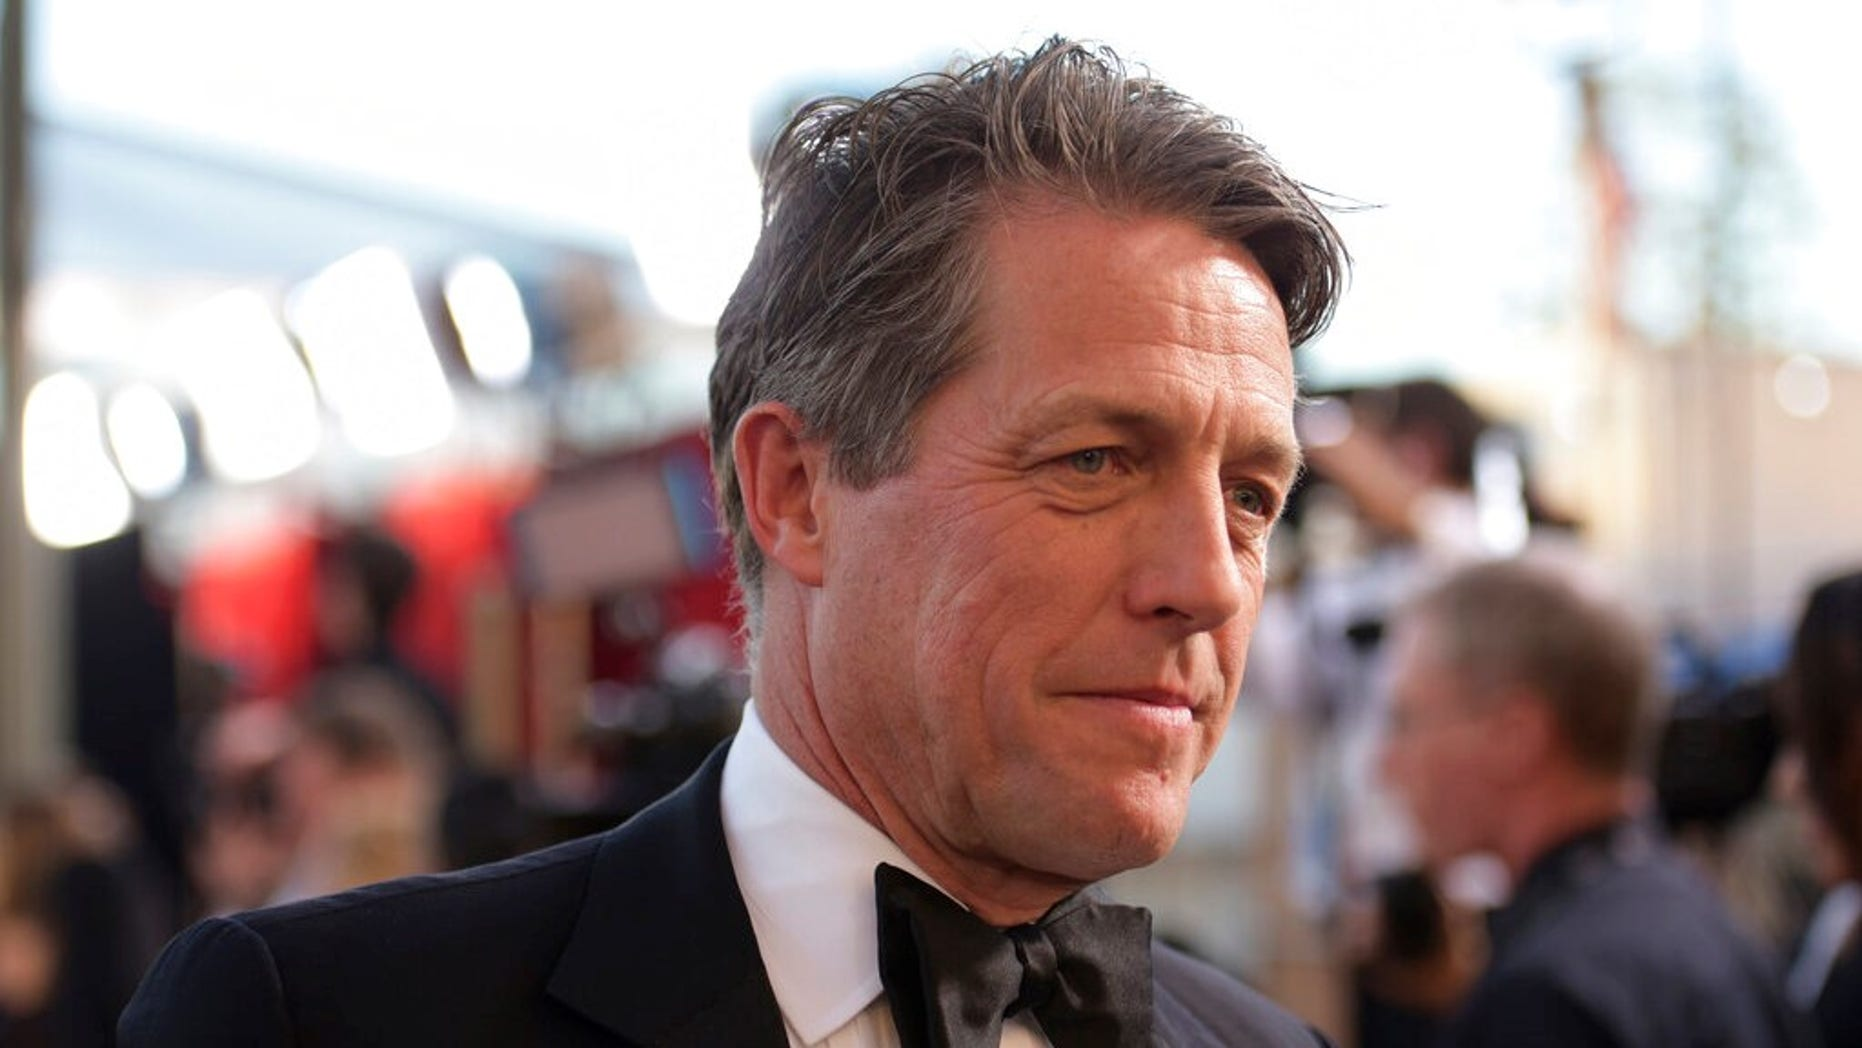 British actor Hugh Grant tweeted a plea to the thief who broke into his car late Sunday.